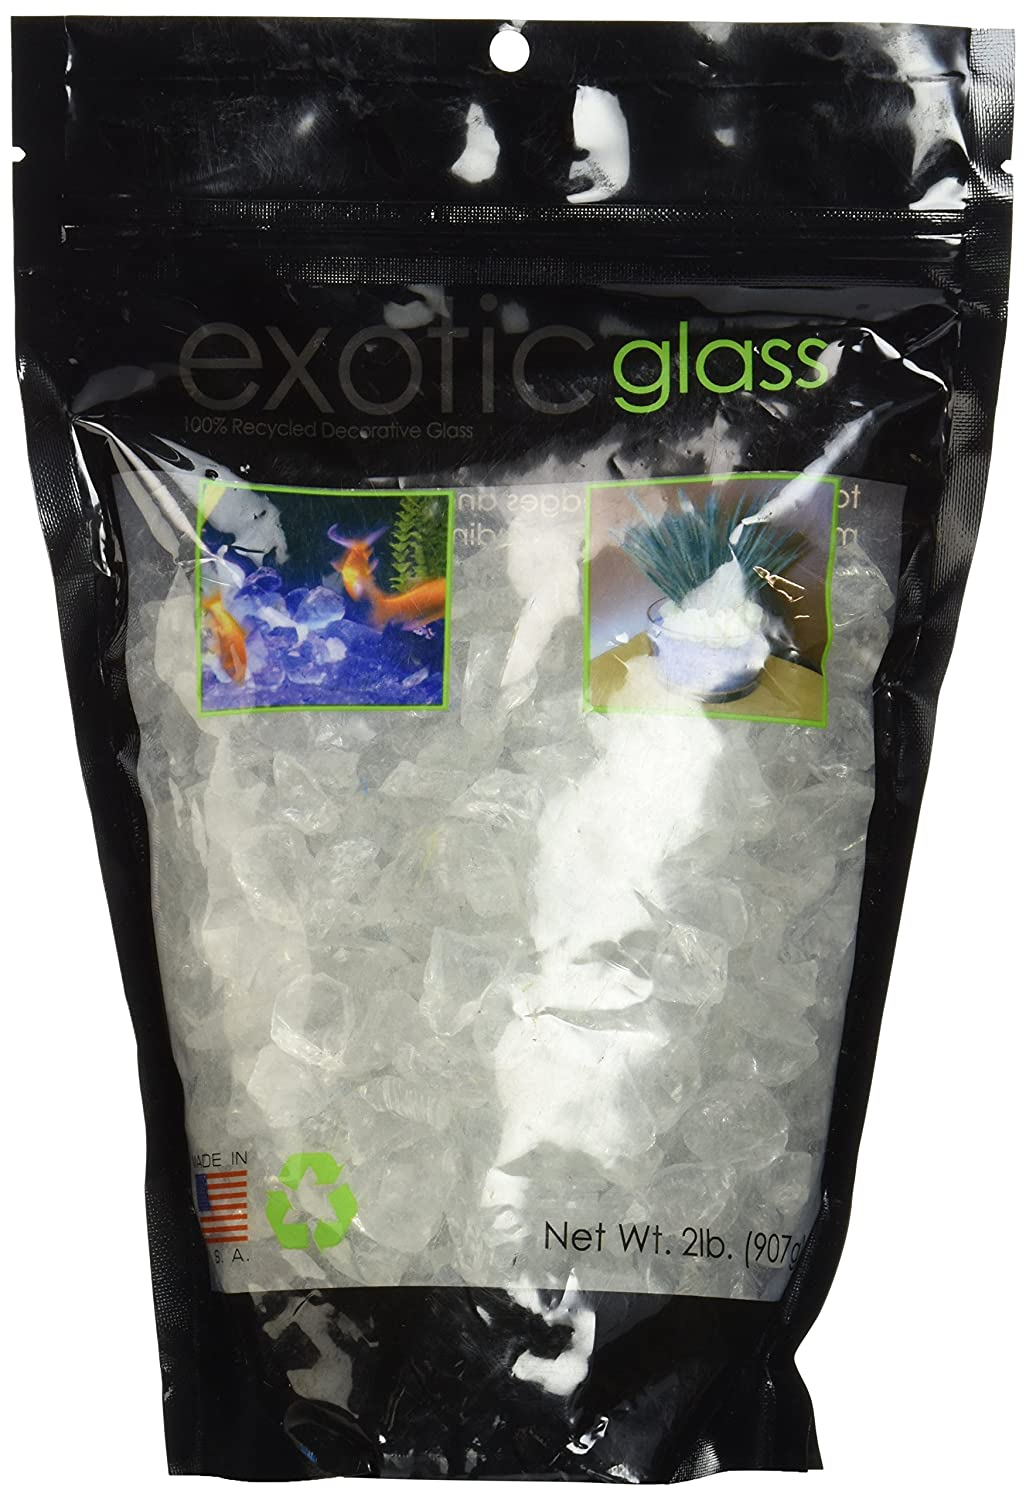 Exotic Pebbles and Aggregates 2-Number Bag, Small, Ice Clear Glass EG02L01S-B